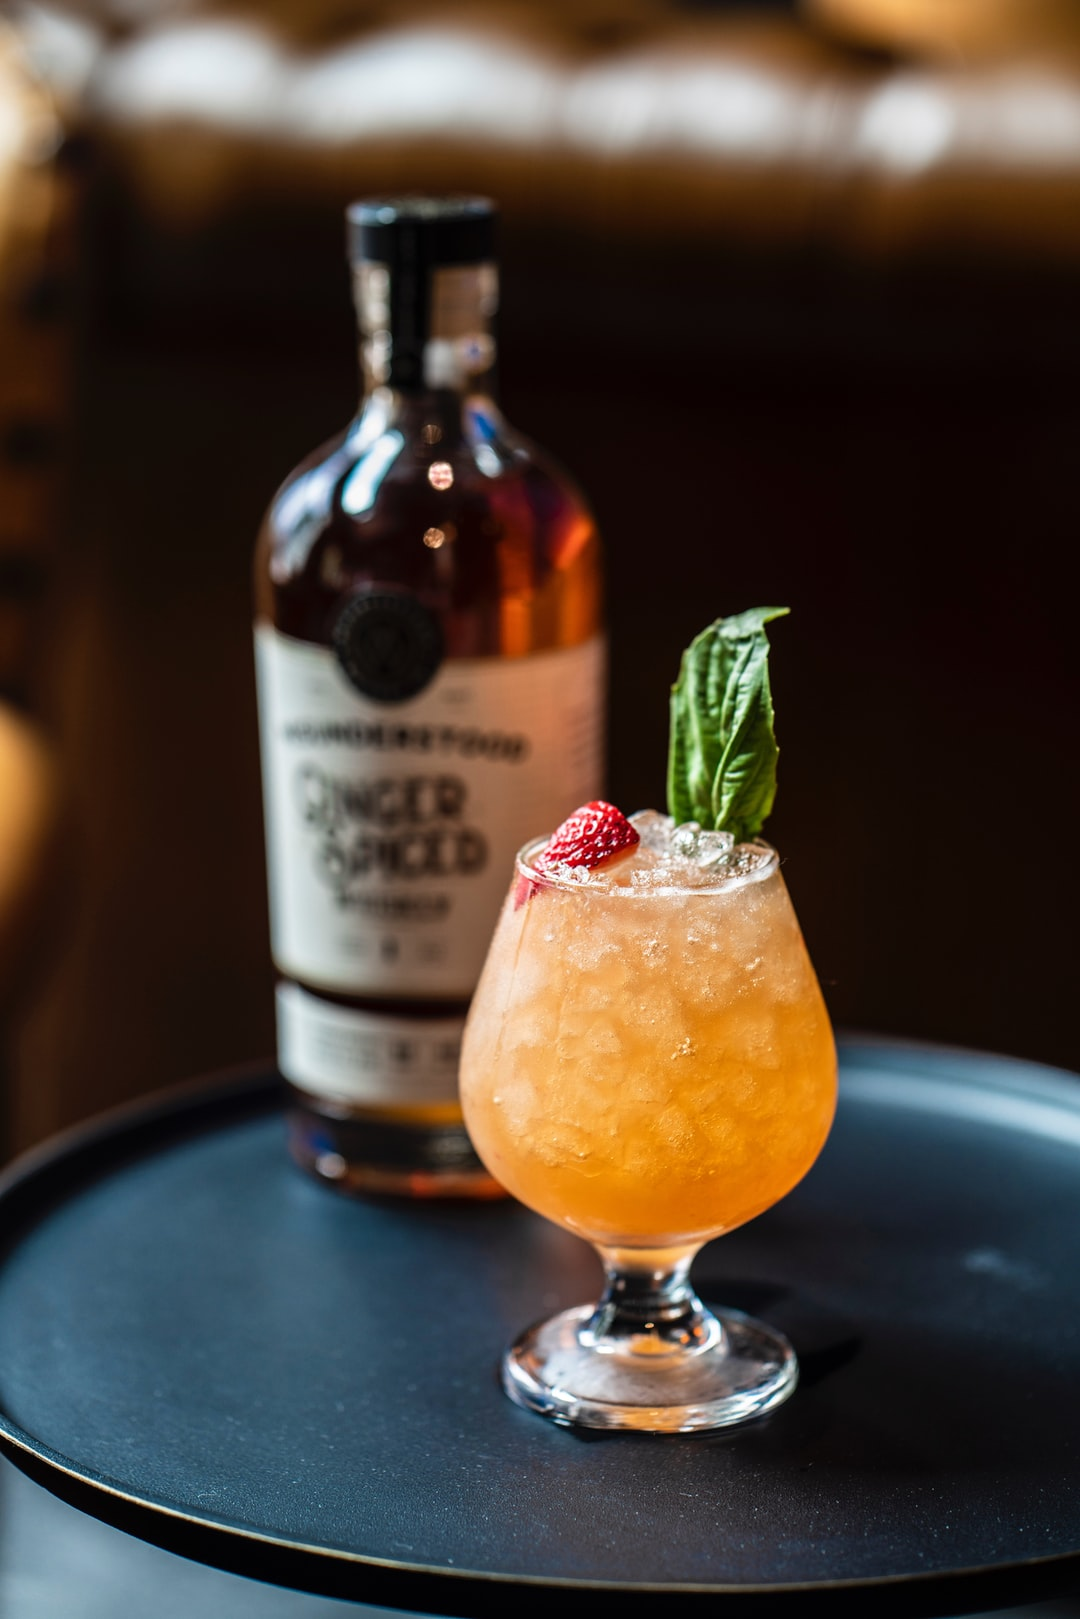 Misunderstood Whiskey Strawberry Basil Smash cocktail at a local bar in Jersey City.